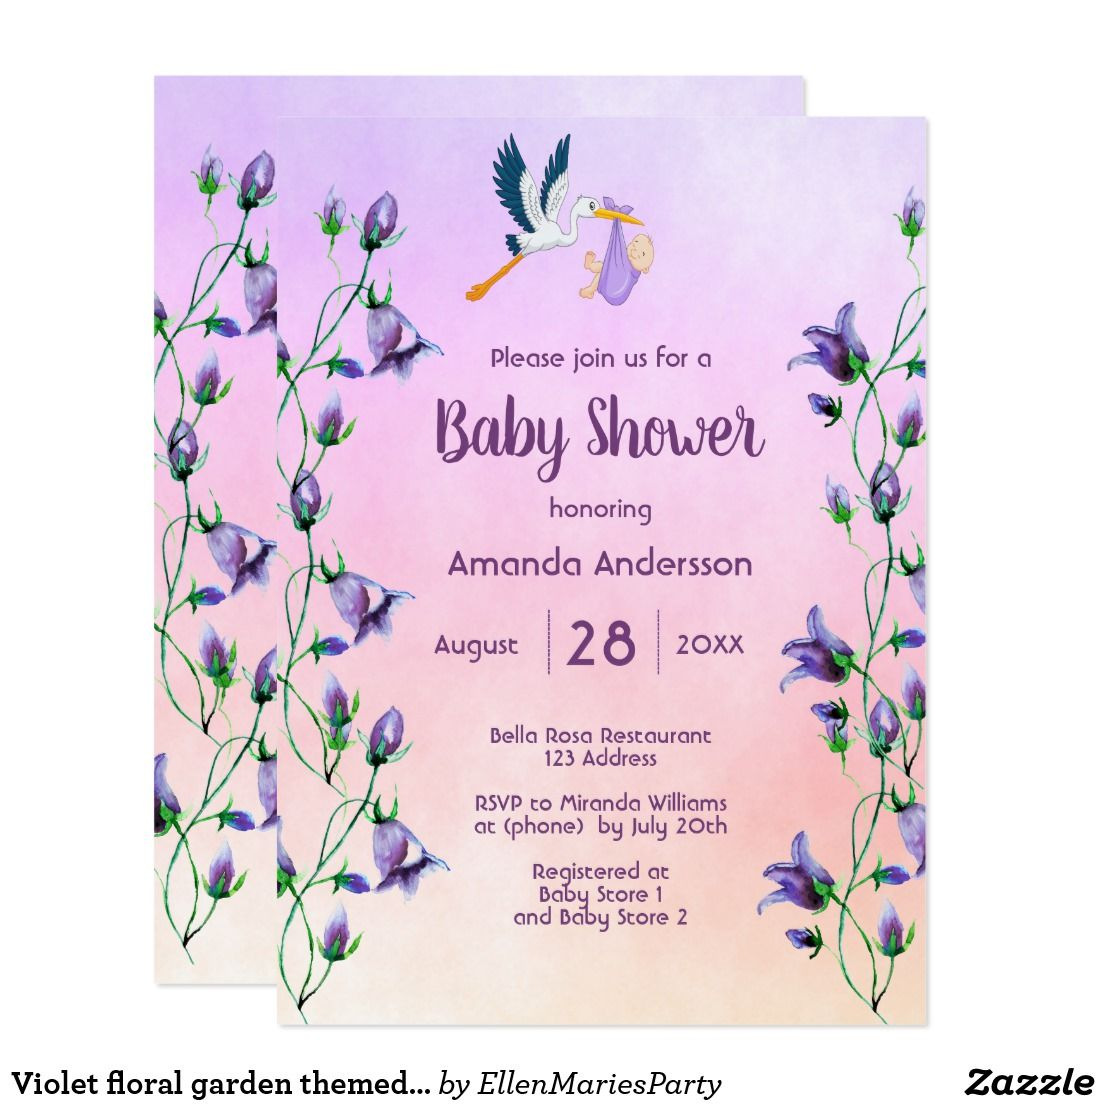 Baby Shower Invitation Letter Classy Violet Floral Garden Themed Baby Shower Invitation  Babies And Baby .